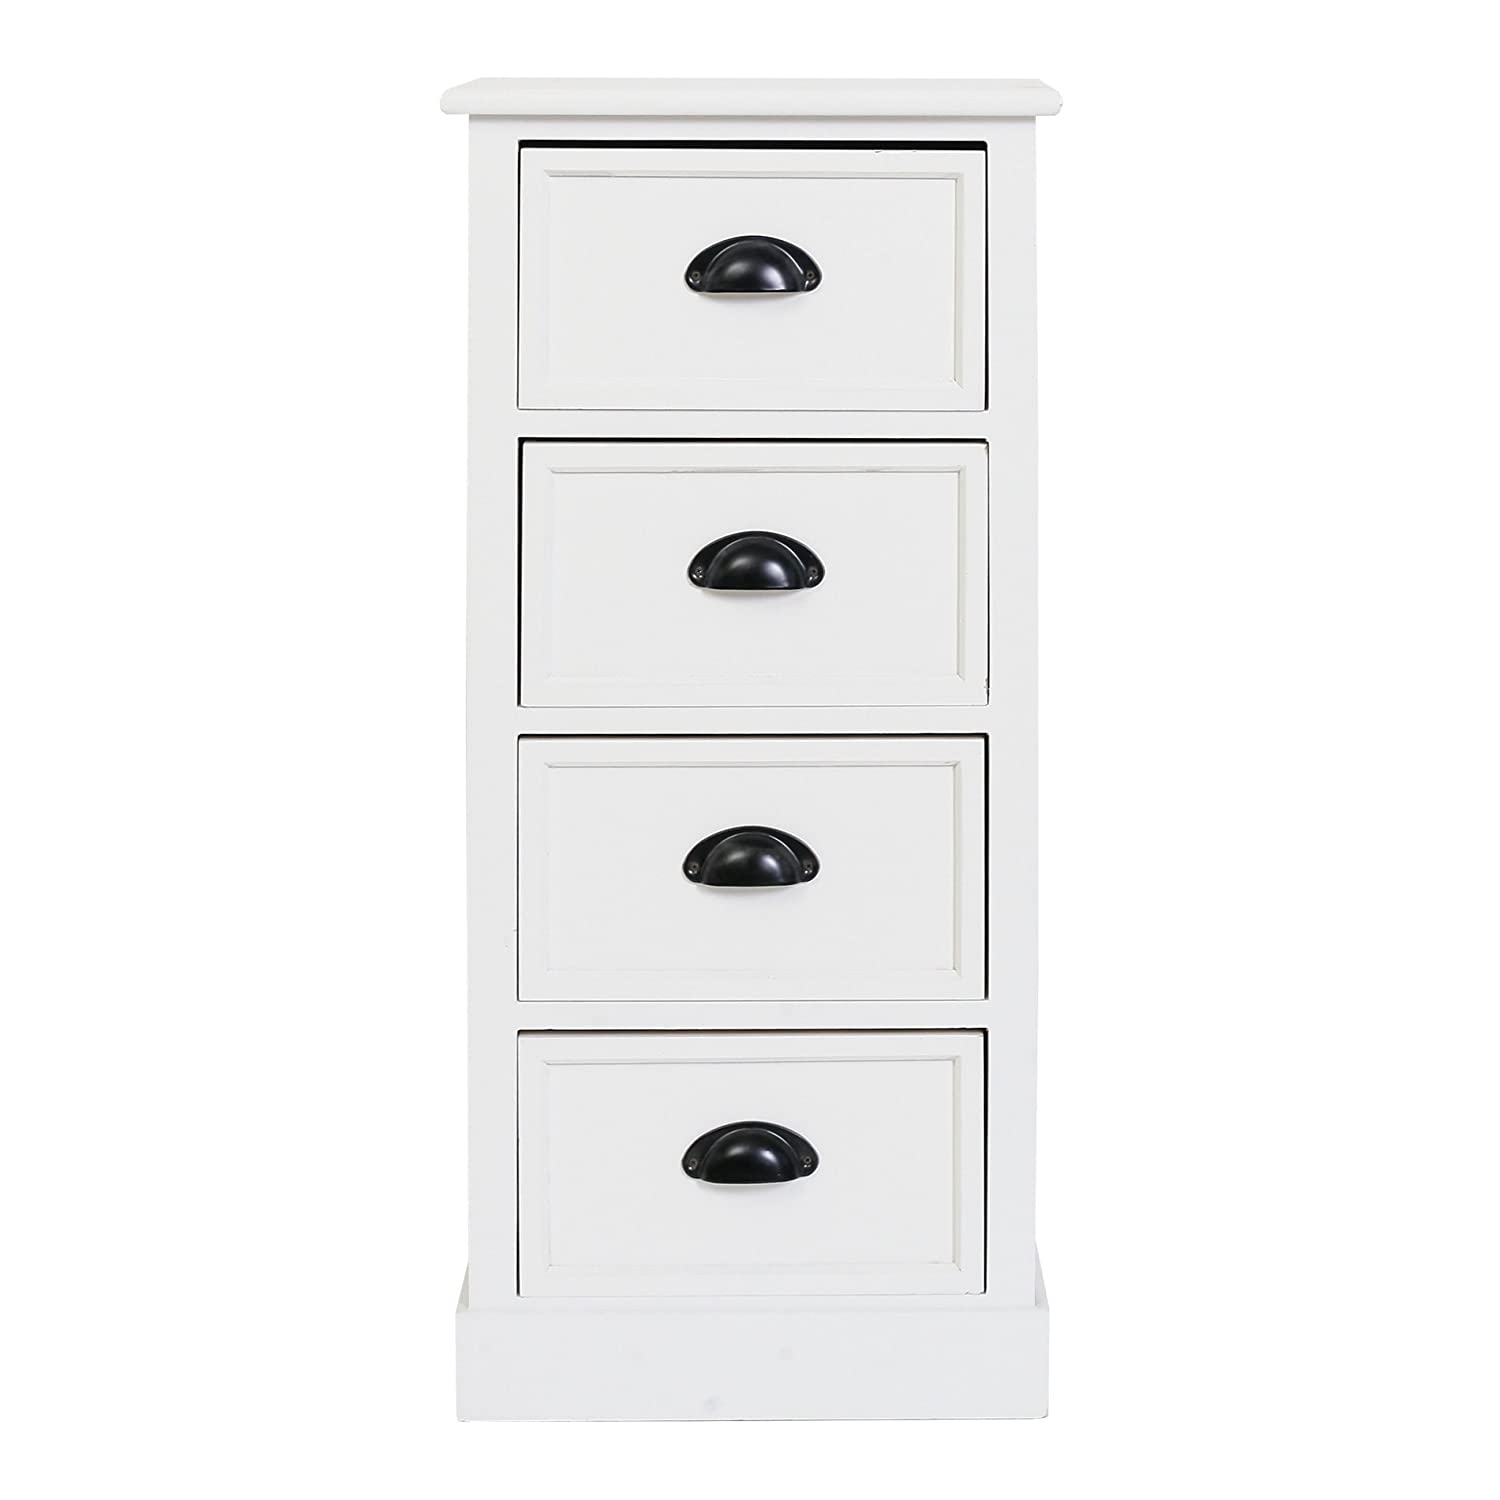 Mobili Shabby Country.Rebecca Mobili Cabinet Furniture Bedside 4 Drawers White Wood Country Shabby Chic French Home Decor Bedroom 81 X 37 X 29 Cm H X W X D Art